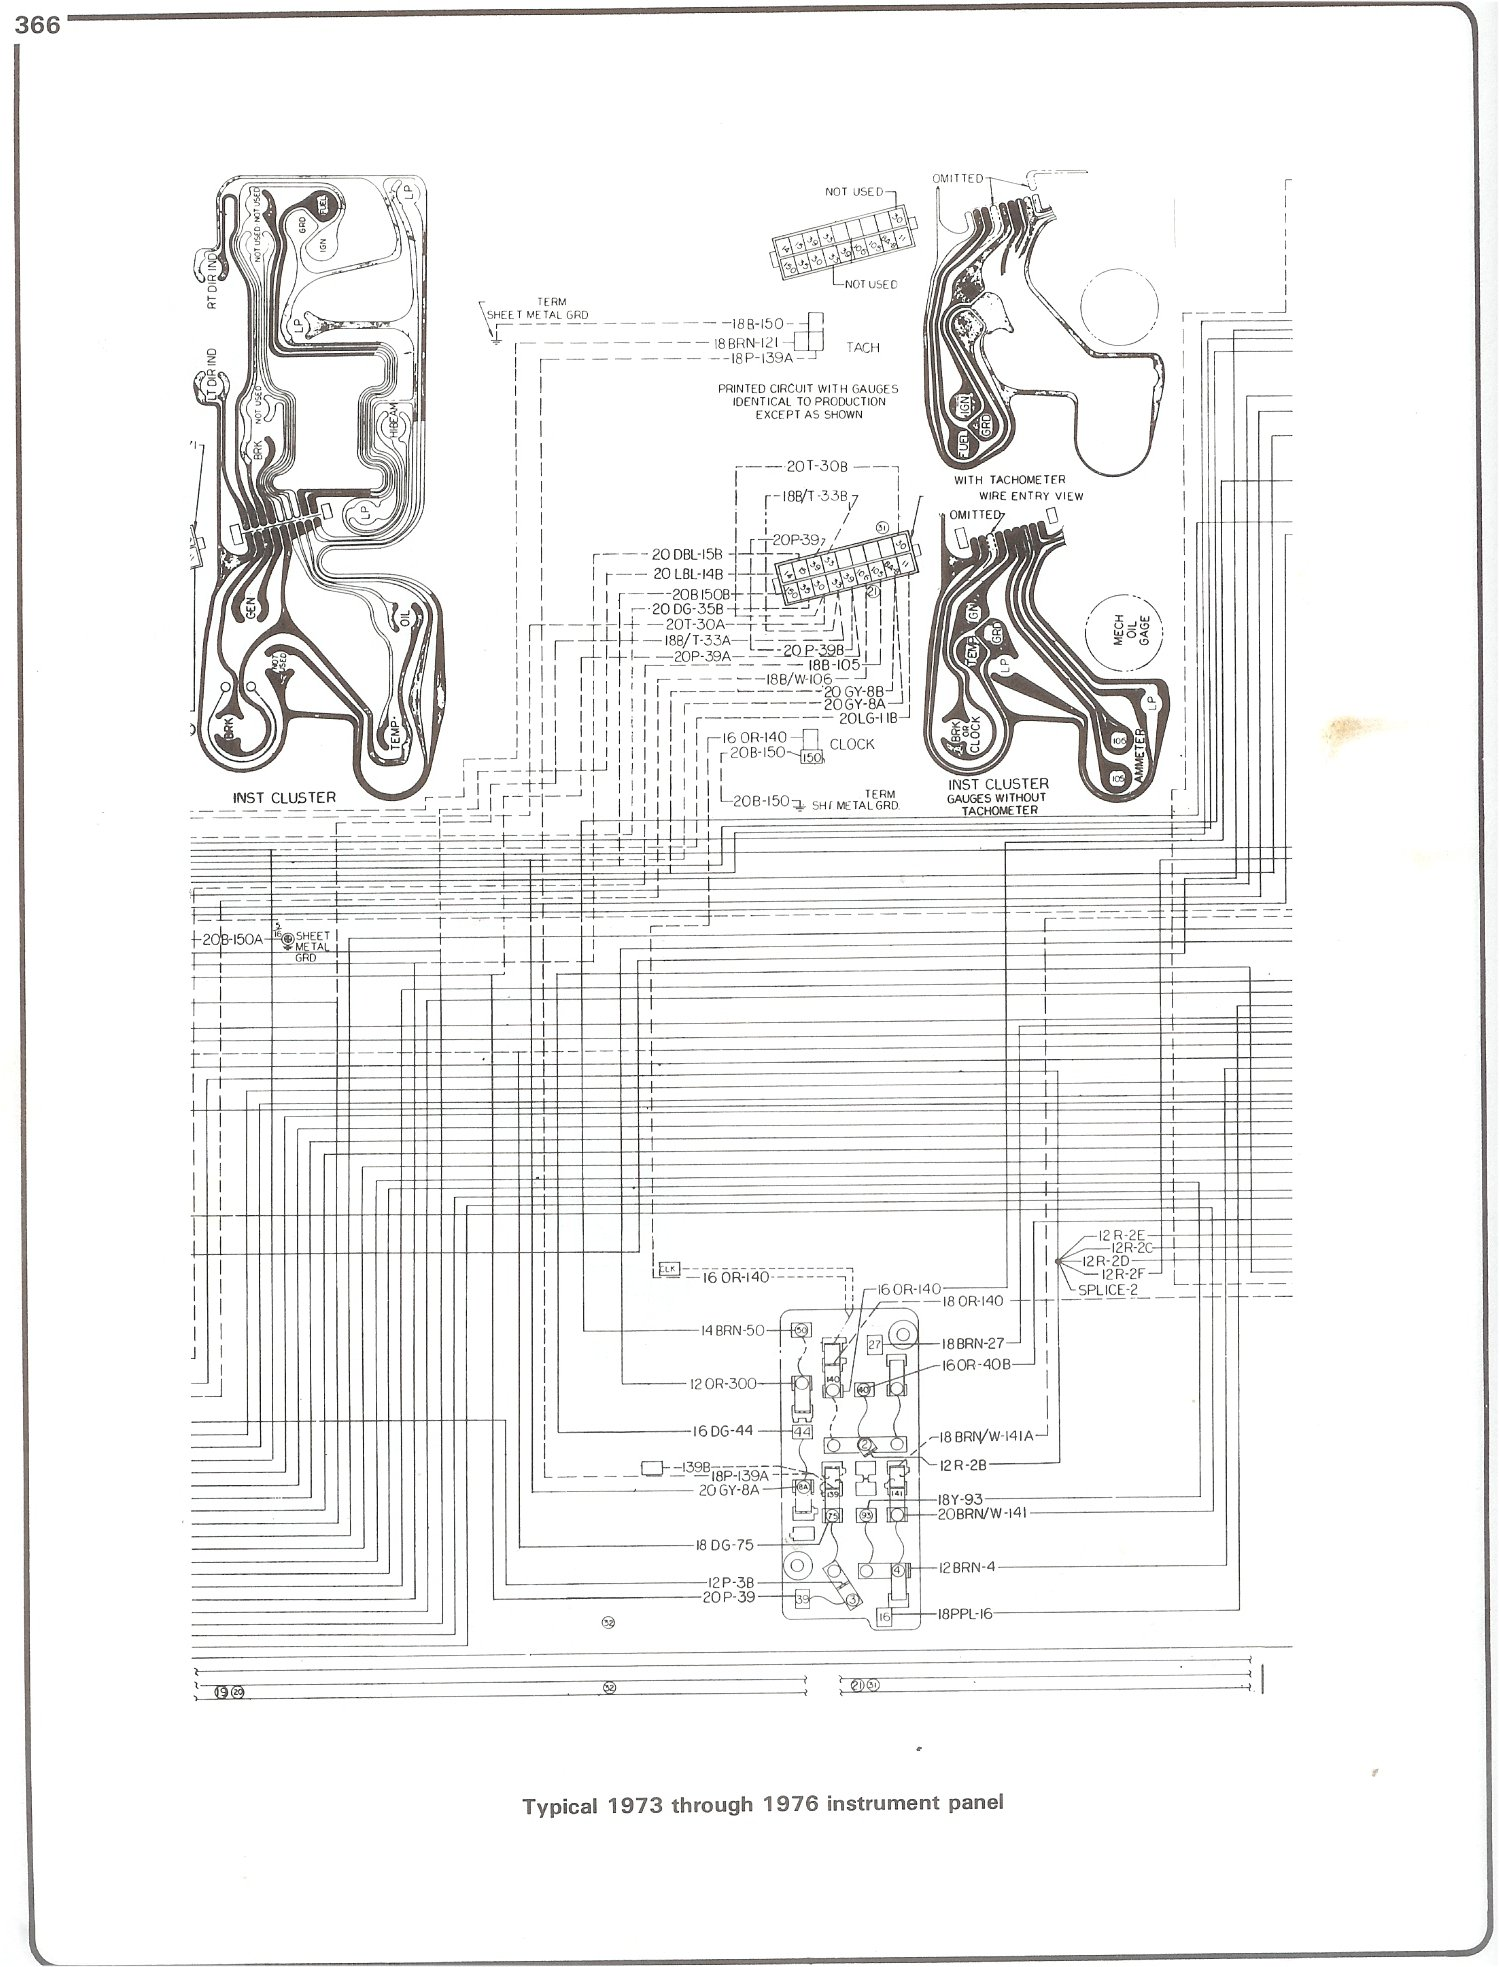 73 76_instrument complete 73 87 wiring diagrams 1986 chevy k10 wiring harness at fashall.co